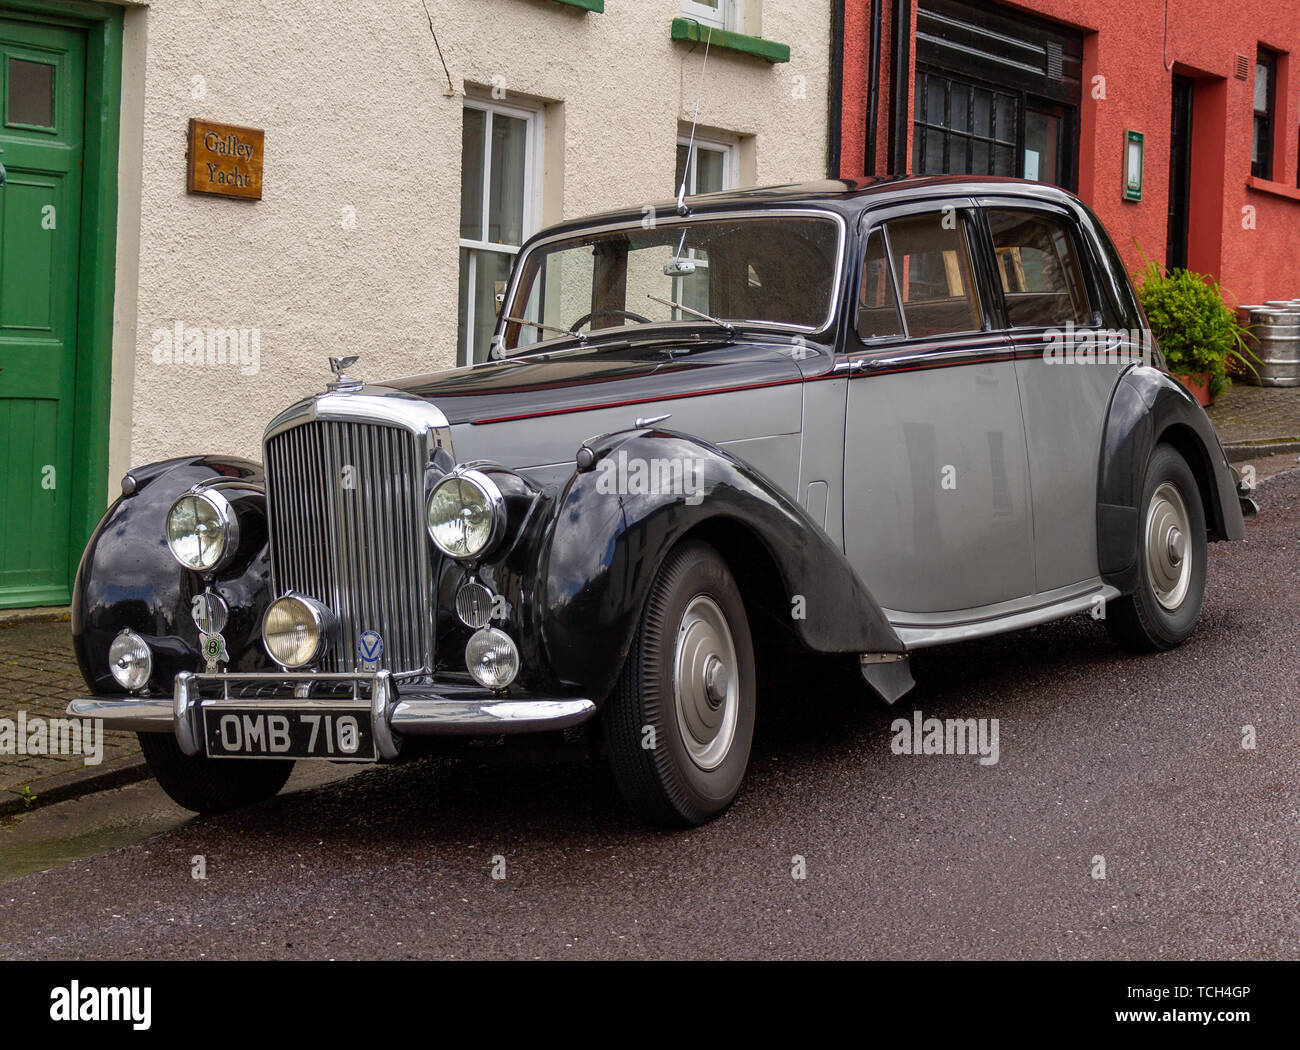 vintage-bentley-motor-car-in-black-and-grey-colours-or-colors-TCH4GP.jpg